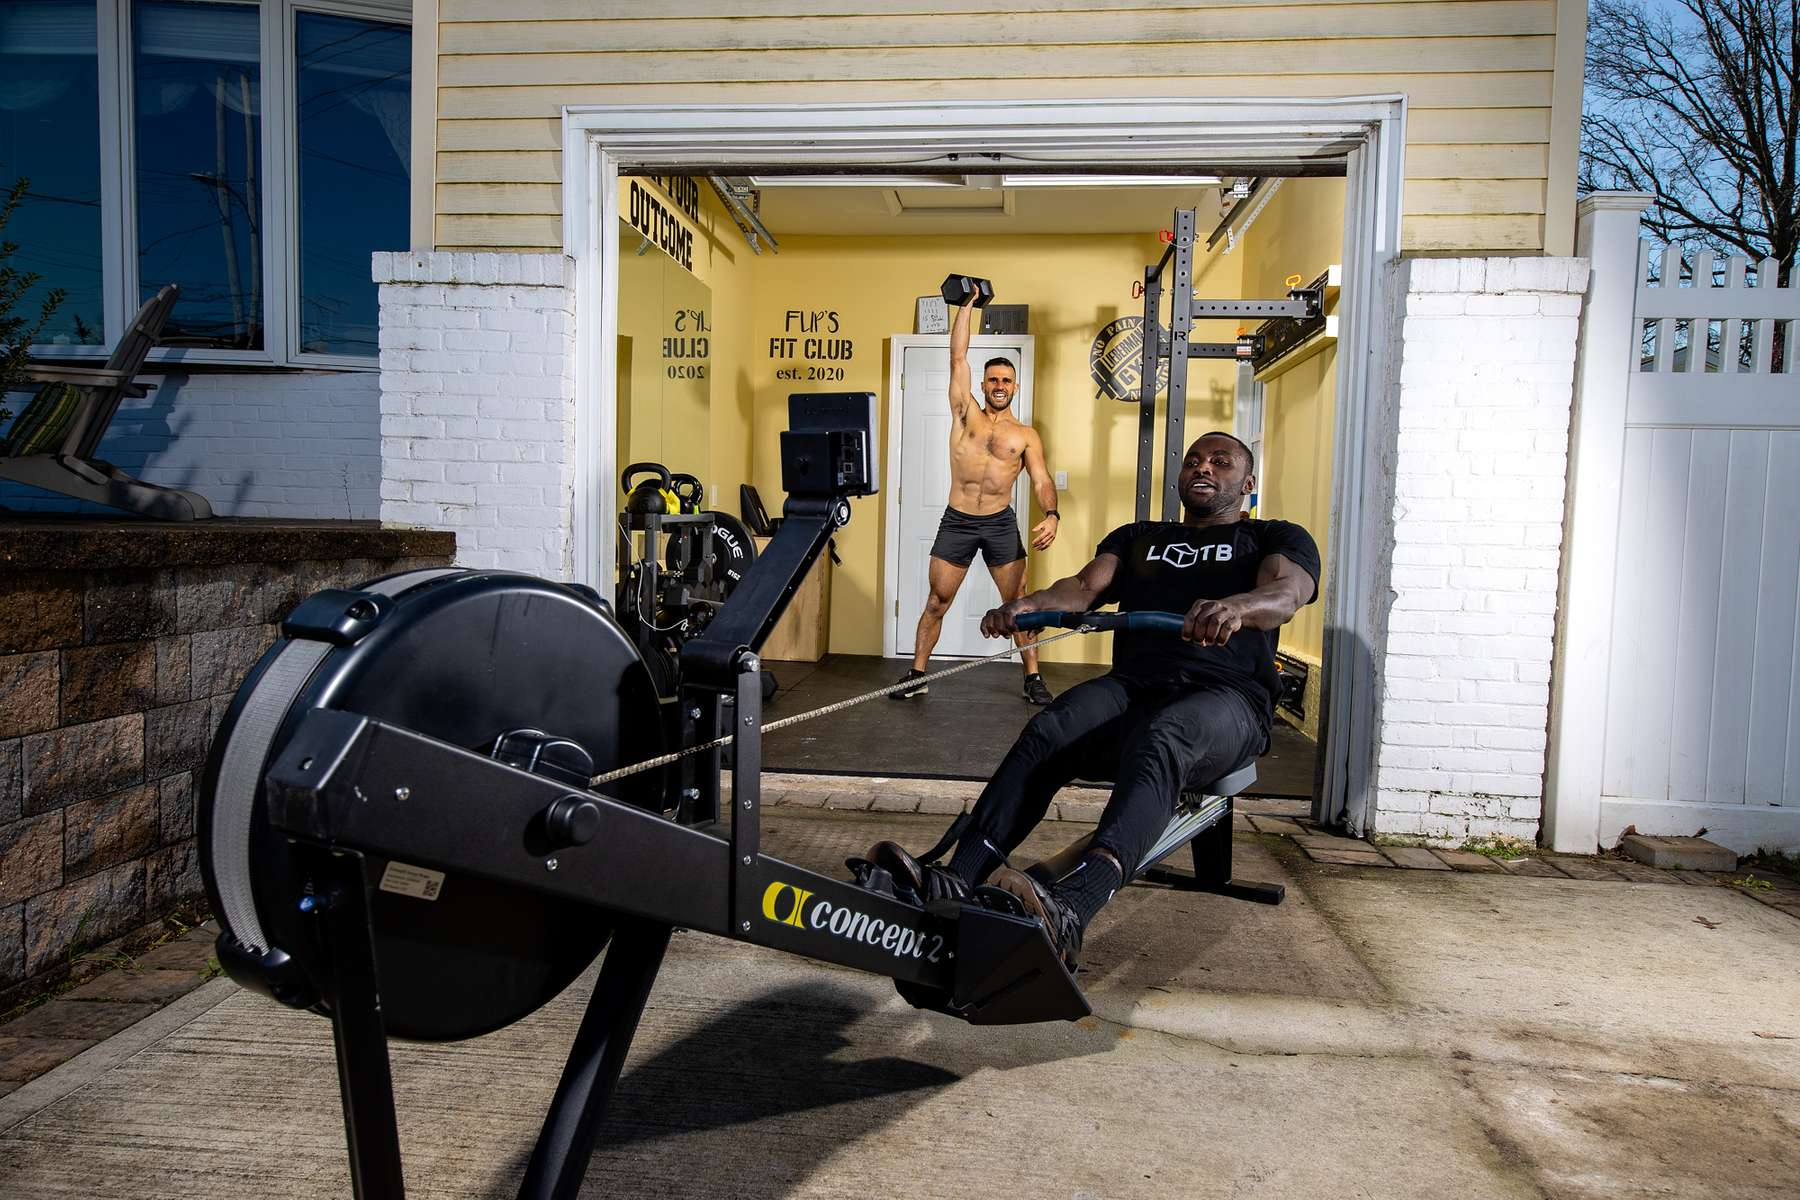 John Puccio and Raheem Yusuff exercise in a friend's garage with their virtual Fitness Trainer Dennis Guerrero on November 14th, 2020 in Oceanside, New York.  In March of 2014, Dennis Guerrero and his business partner opened a gym on Long Island. The pair shared a passion for fitness, a dream of creating a local community of like-minded people and a willingness to take a risk. Over the next six years, hundreds of members experienced and embraced a unique environment that fostered a palpable energy, helping athletes of all ages and abilities reach their potential.  The gym became a place to share achievements, work through losses and overcome illness. But like so many other businesses, it seemingly had no way of overcoming the financial impact and ongoing uncertainty of a global pandemic. With the arrival of Covid-19, the gym shut its doors back in March, with no idea when it would reopen. The owners, though, were far from done. They lent out every piece of equipment they owned to the gym's members, continued to pay their staff and worked to set up outdoor classes in hopes of keeping their membership active and healthy. As the shutdown stretched on, it became clear that the physical gym was closed for good.  They have since reinvented themselves and are now called Life Outside the Box.  Their business model has changed drastically, and all their workouts have gone virtual.  The workouts are conducted by a small group of fitness trainers led by Guerrero.  The members pay a monthly fee and can take live Zoom fitness classes.  They are coached by the virtual trainers in real time.  More and more people have reconstructed their garages, spare rooms, backyards, and basements into home gyms since the COVID-19 pandemic hit the United States.